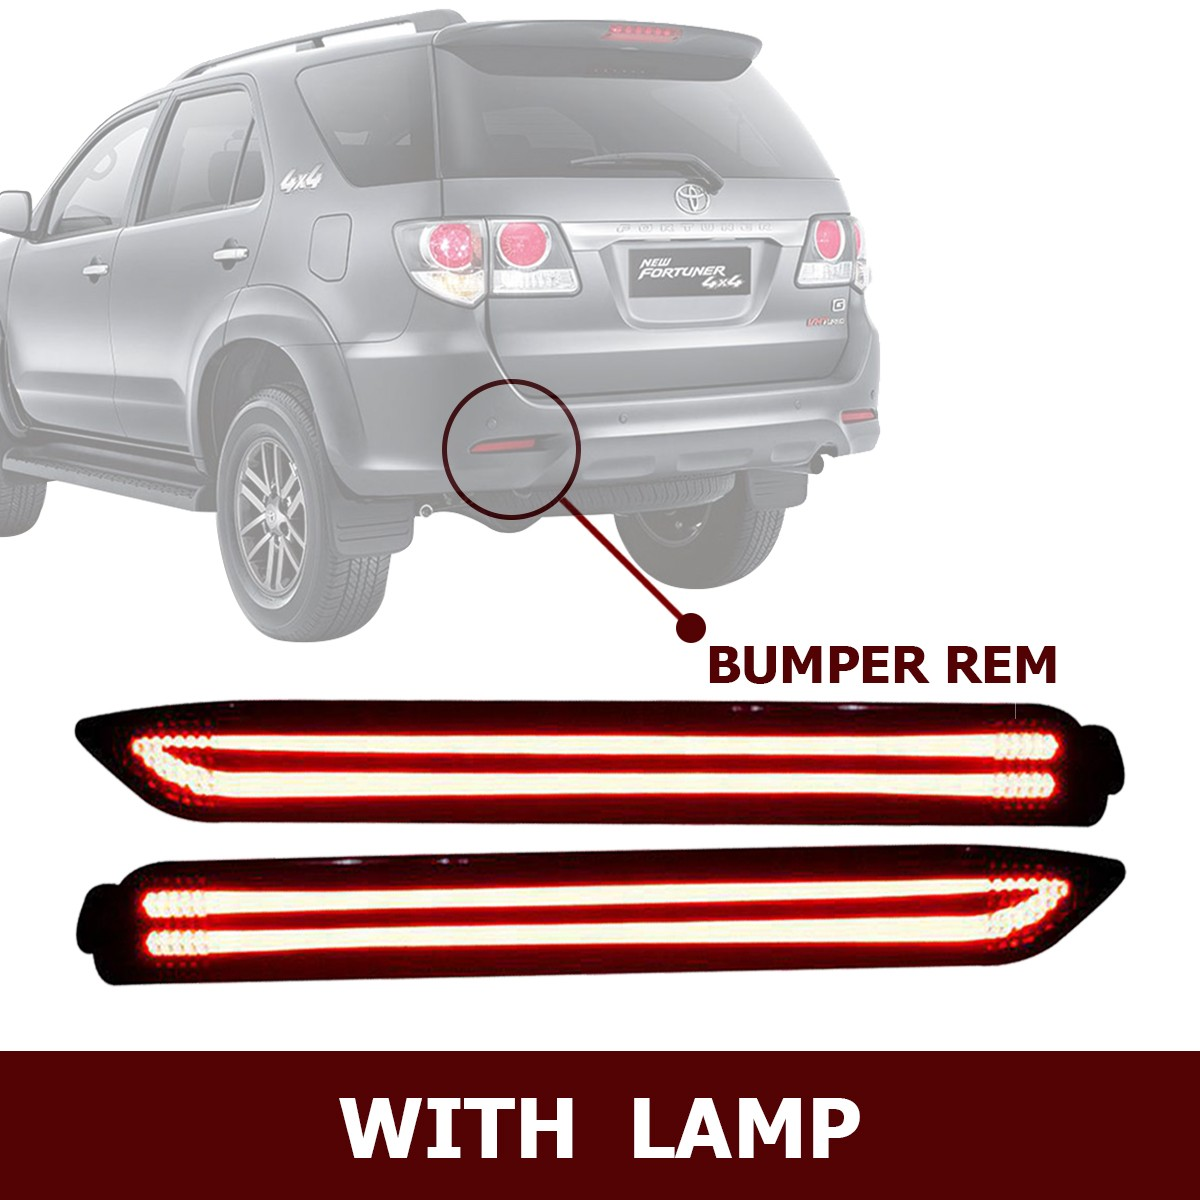 HIRO REAR REFLEKTOR LED BUMPER REM WITH LAMP FOR TOYOTA FORTUNER 2013